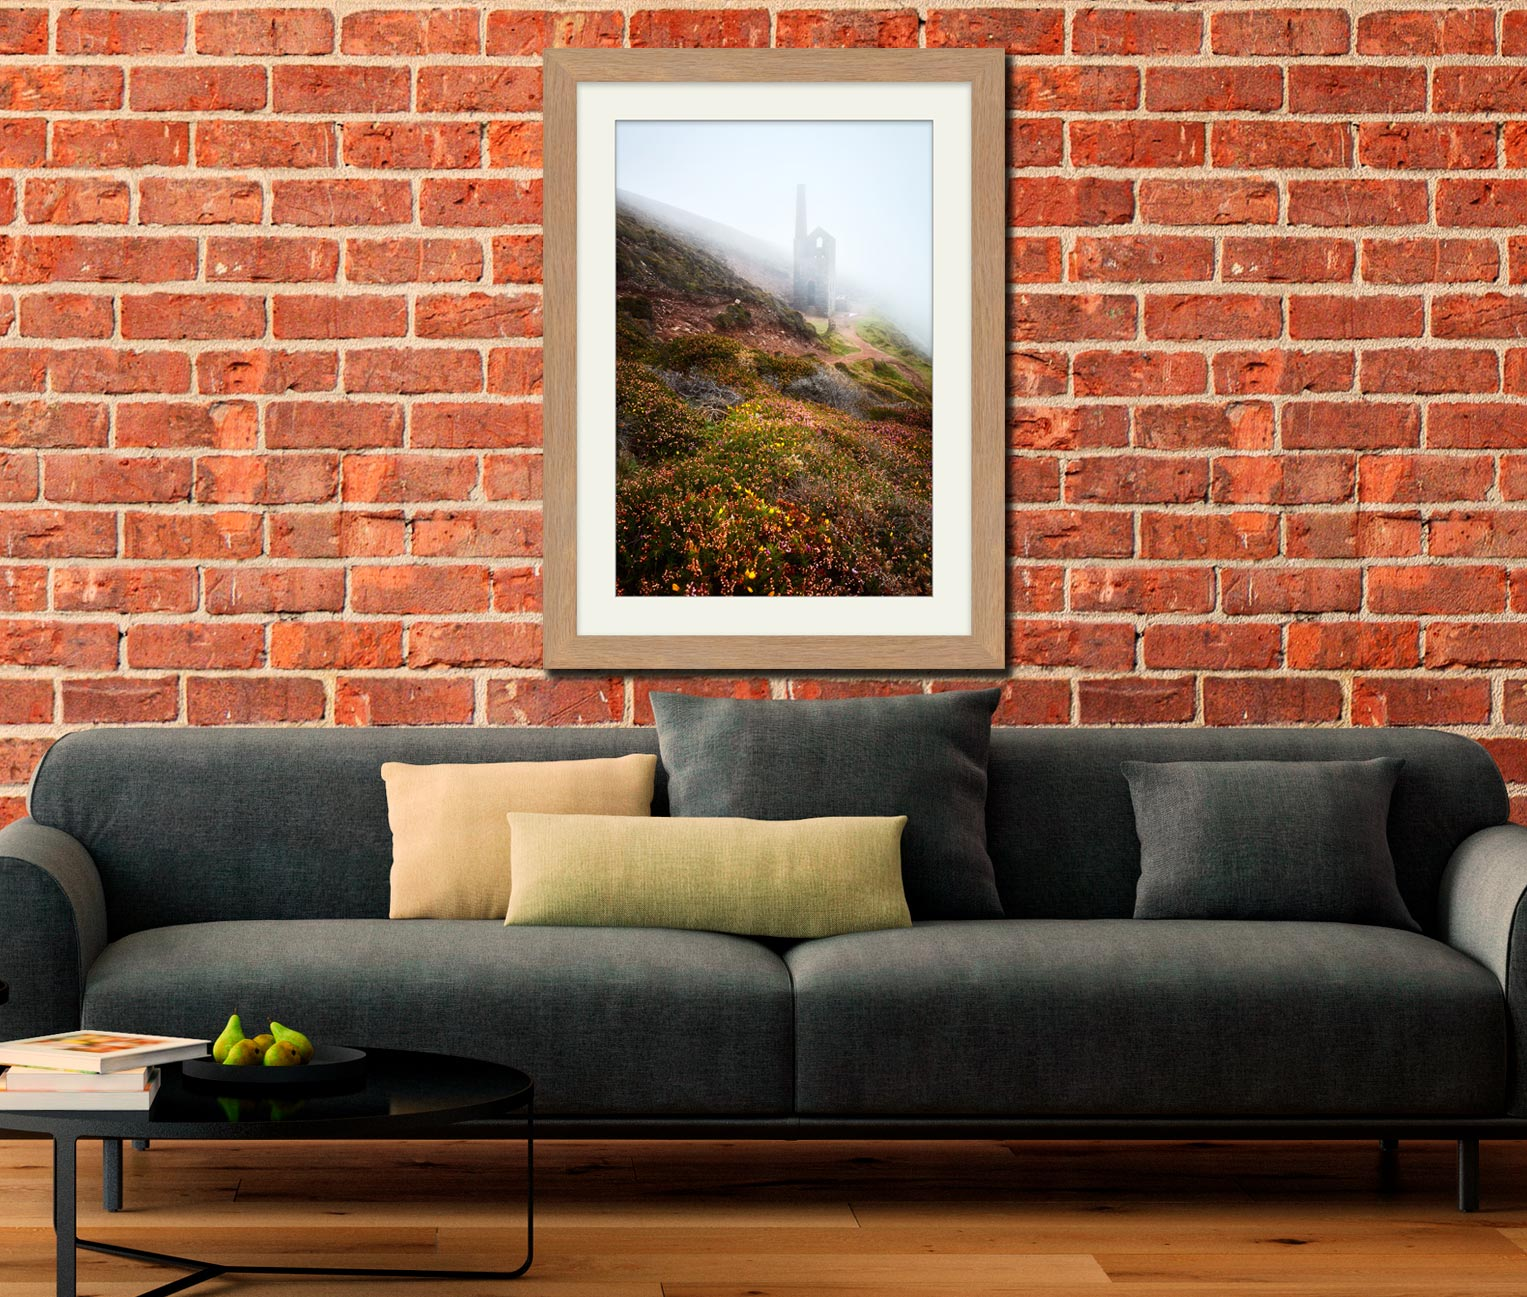 St Agnes Mine in the Mist - Framed Print with Mount on Wall